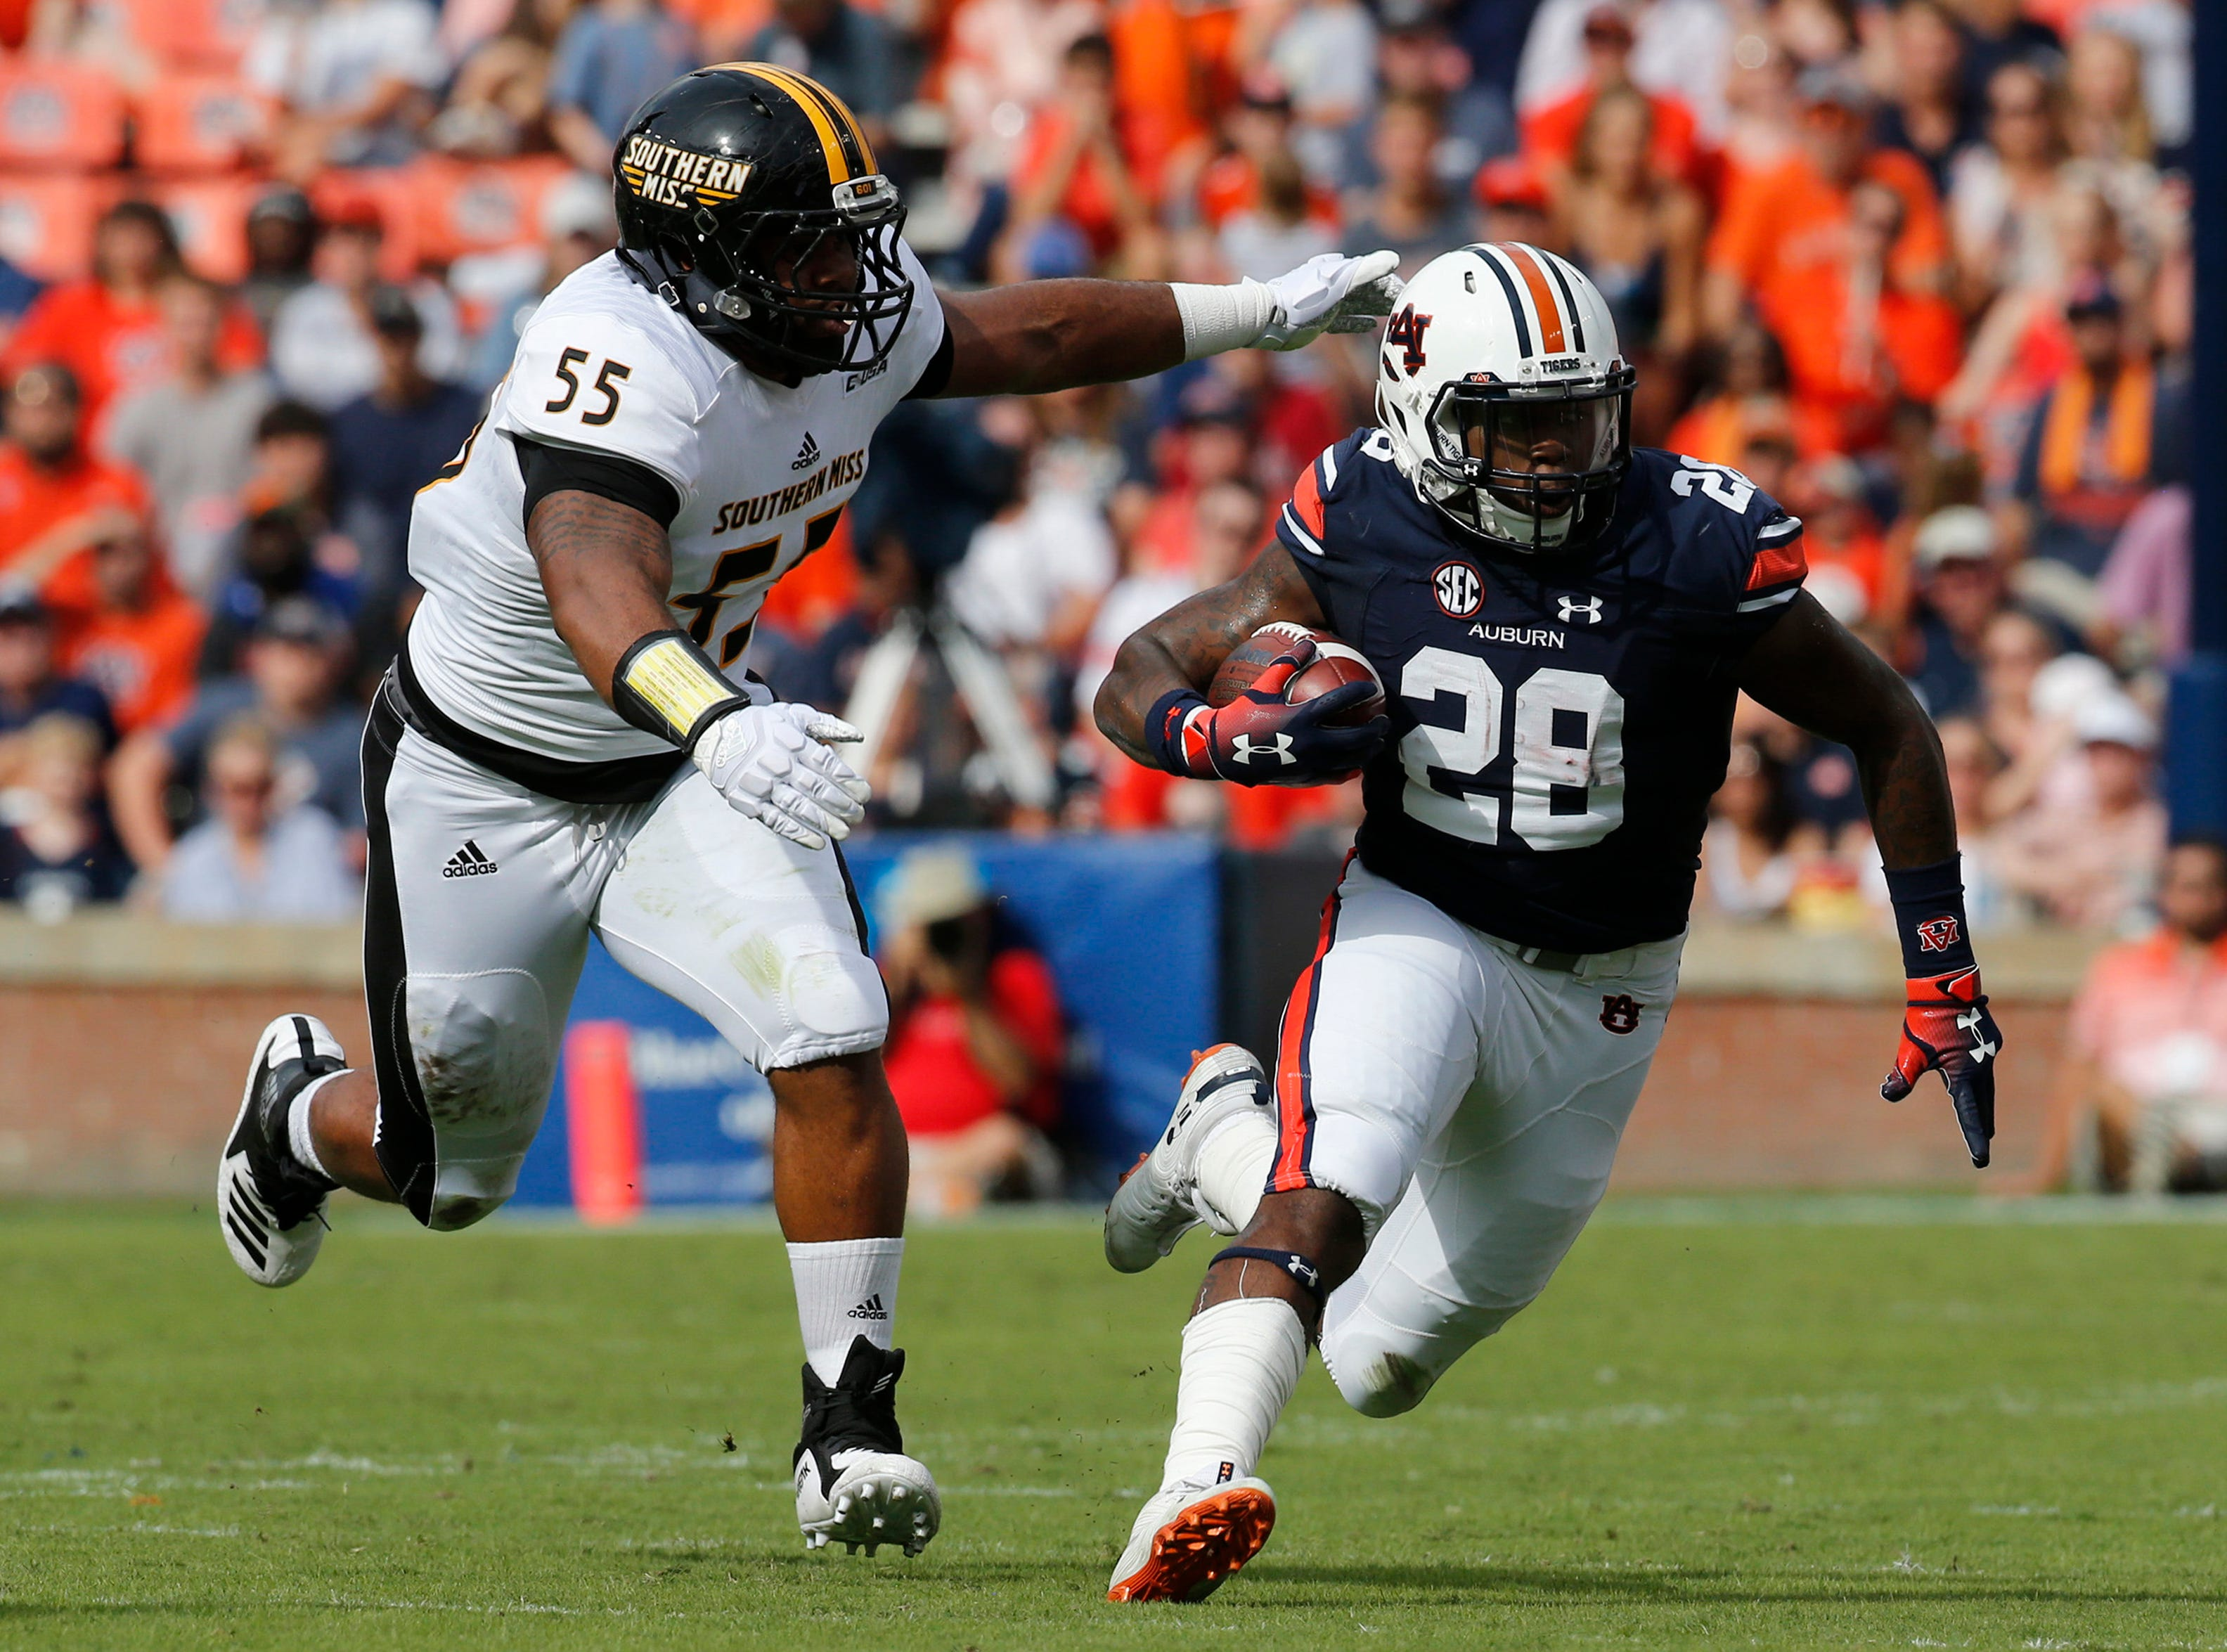 Sep 29, 2018; Auburn, AL, USA; Southern Miss Golden Eagles lineman Demarrio Smith (55) chases down Auburn Tigers running back JaTarvious Whitlow (28) during the first quarter at Jordan-Hare Stadium. Mandatory Credit: John Reed-USA TODAY Sports